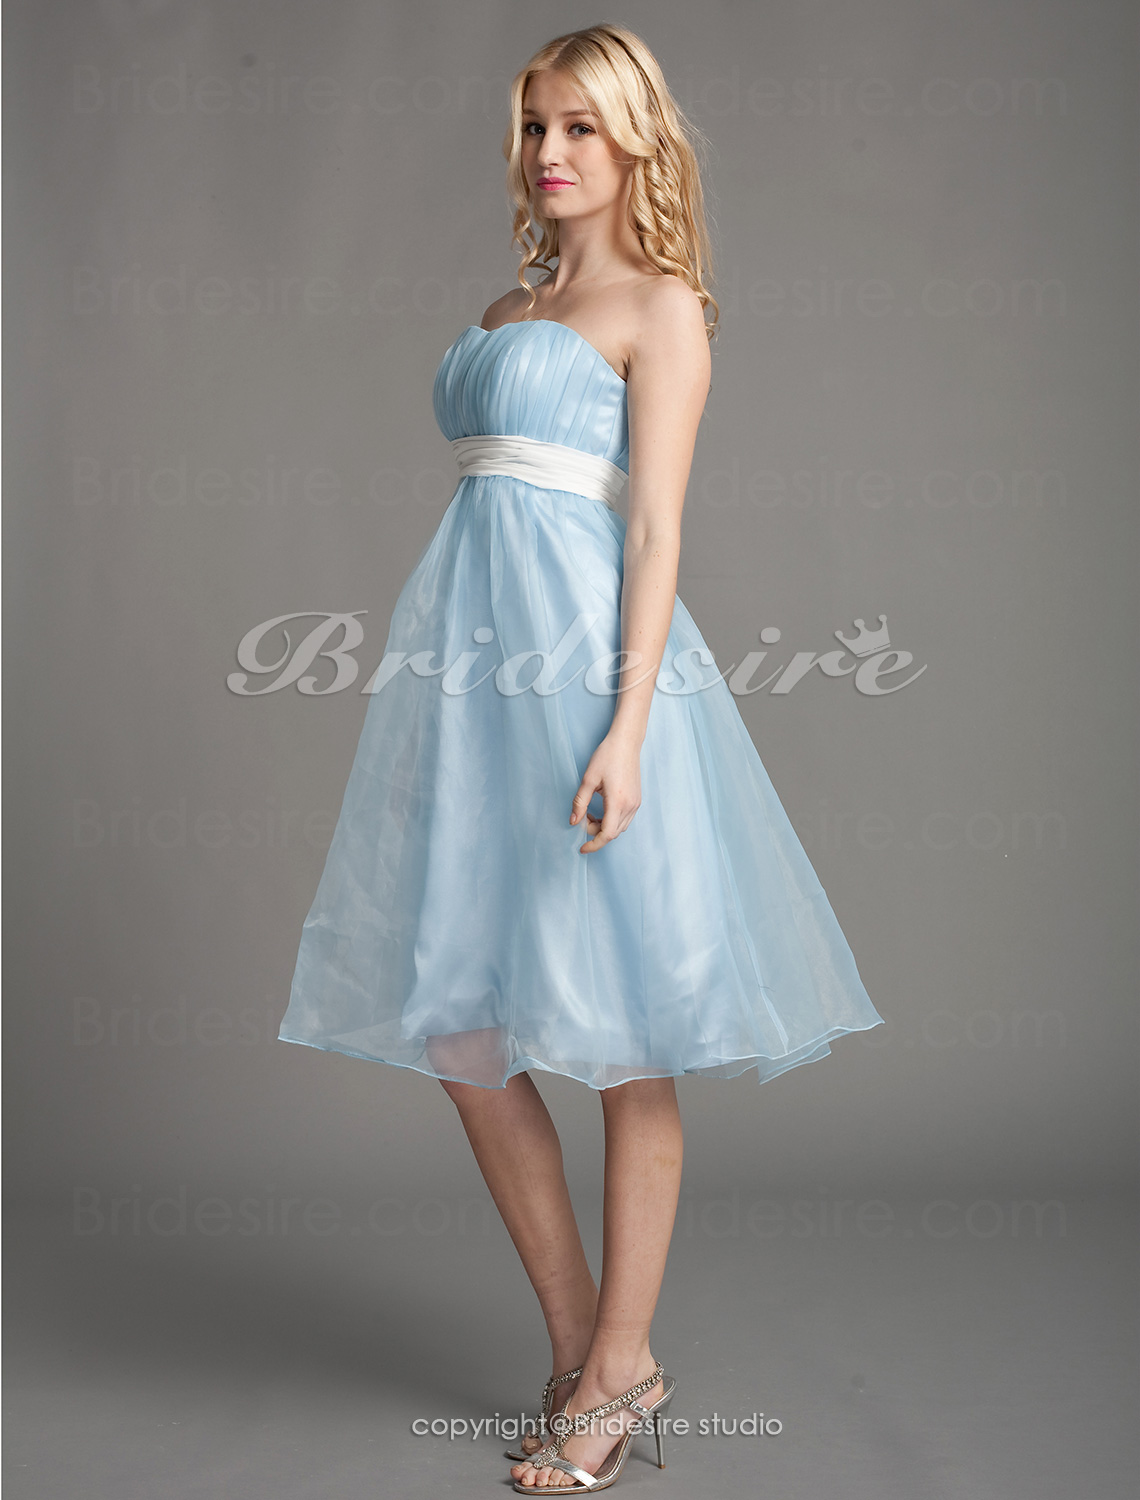 A-line Organza Knee-length Strapless Cocktail Dress